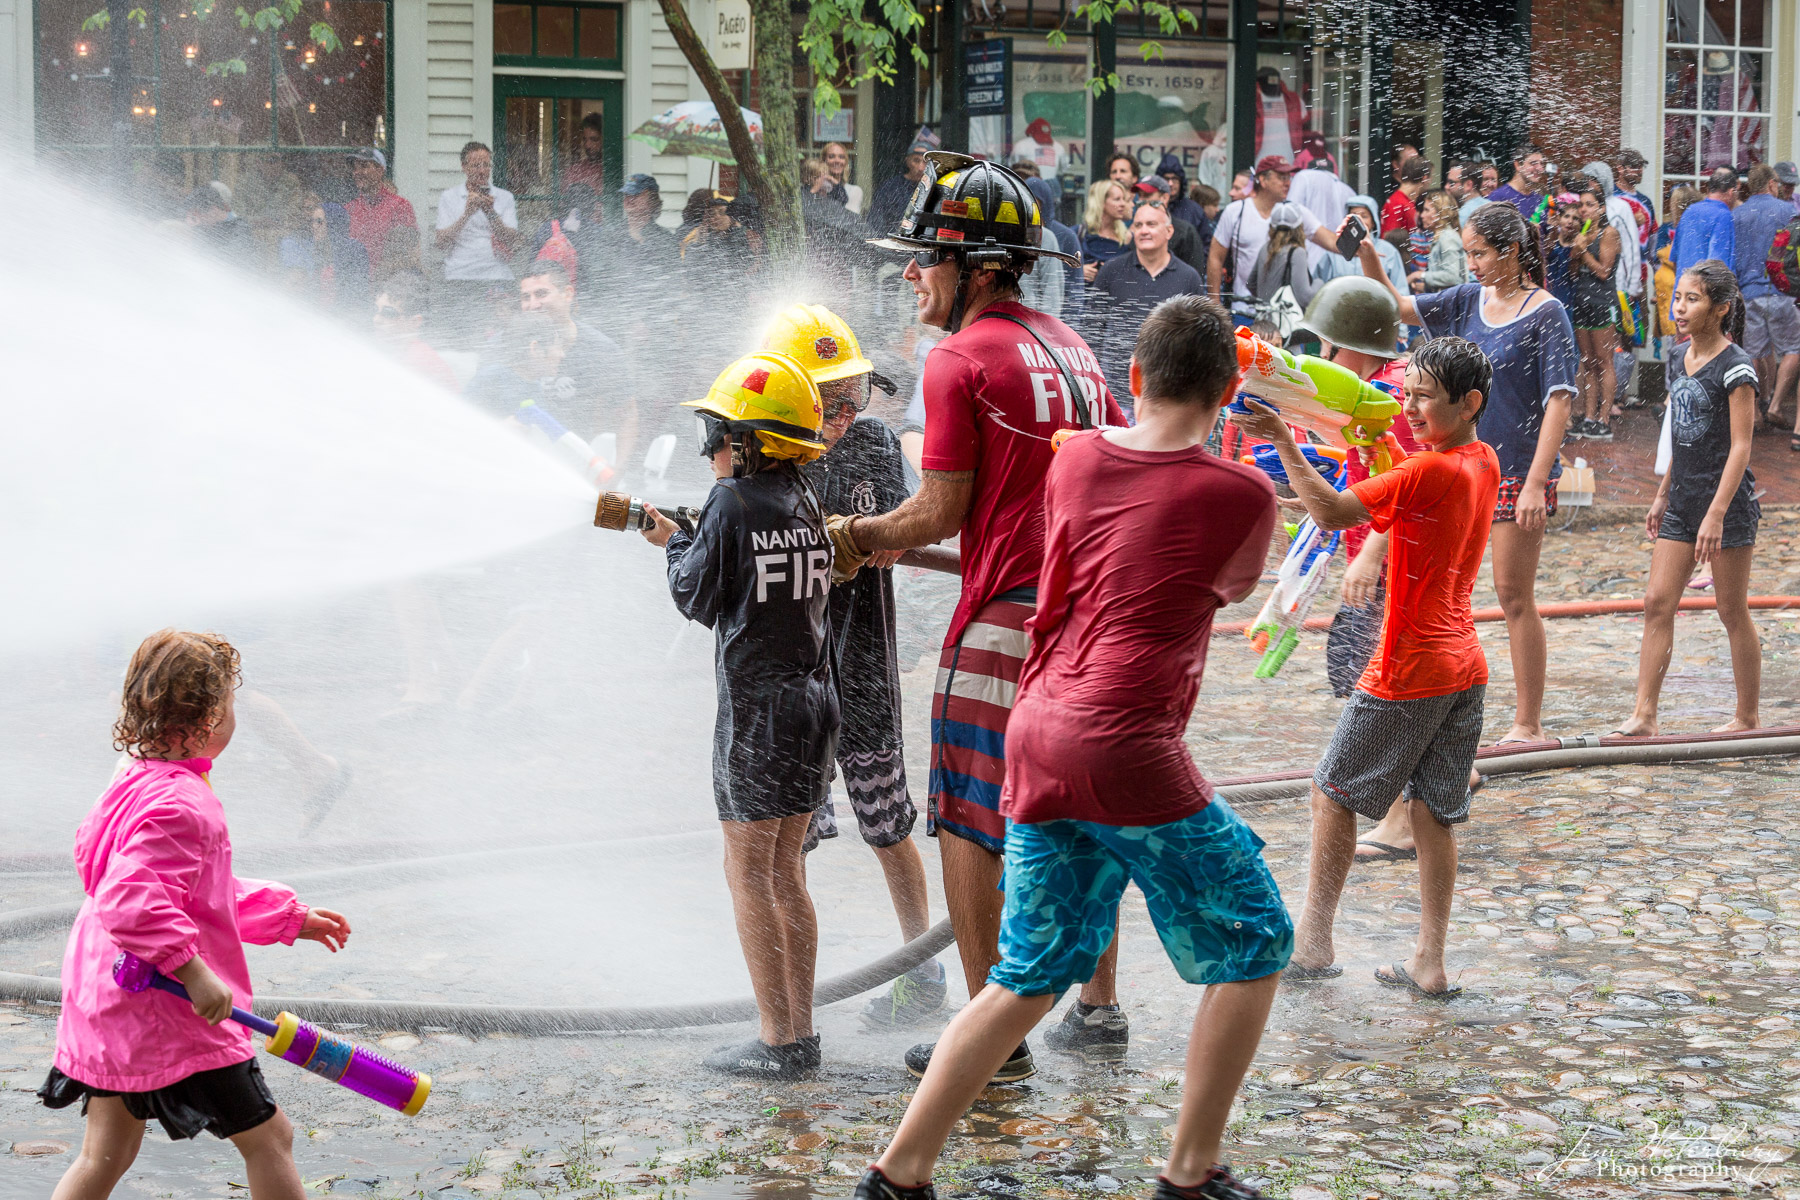 Each July 4th, the town of Nantucket hosts a friendly water fight between the Nantucket Fire Department, and volunteer fire fighters...